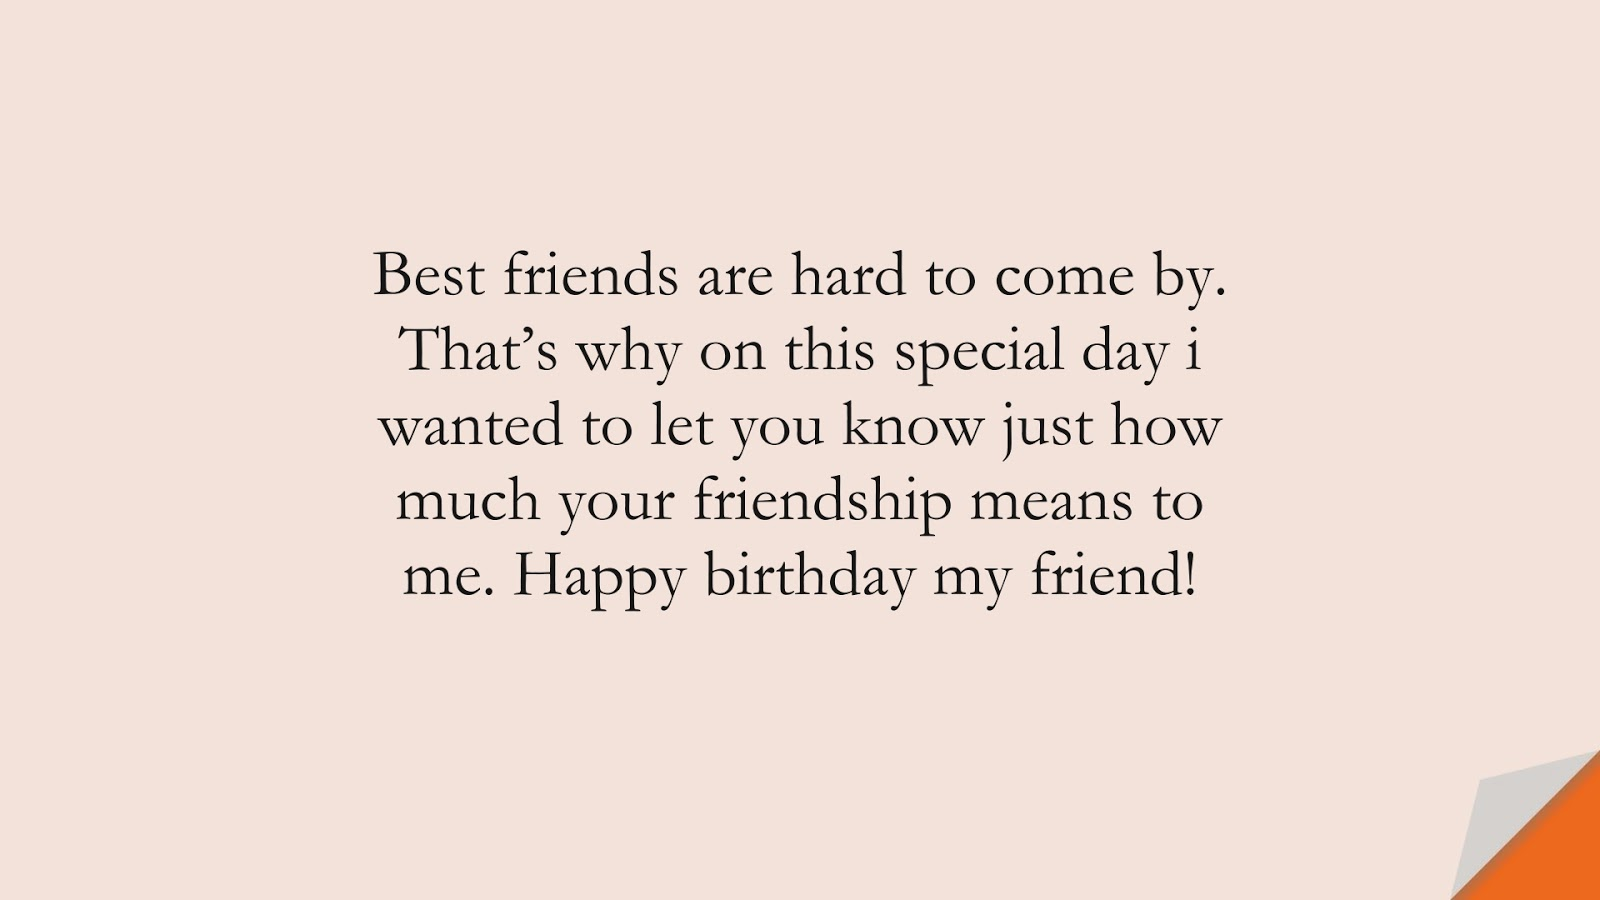 Best friends are hard to come by. That's why on this special day i wanted to let you know just how much your friendship means to me. Happy birthday my friend!FALSE